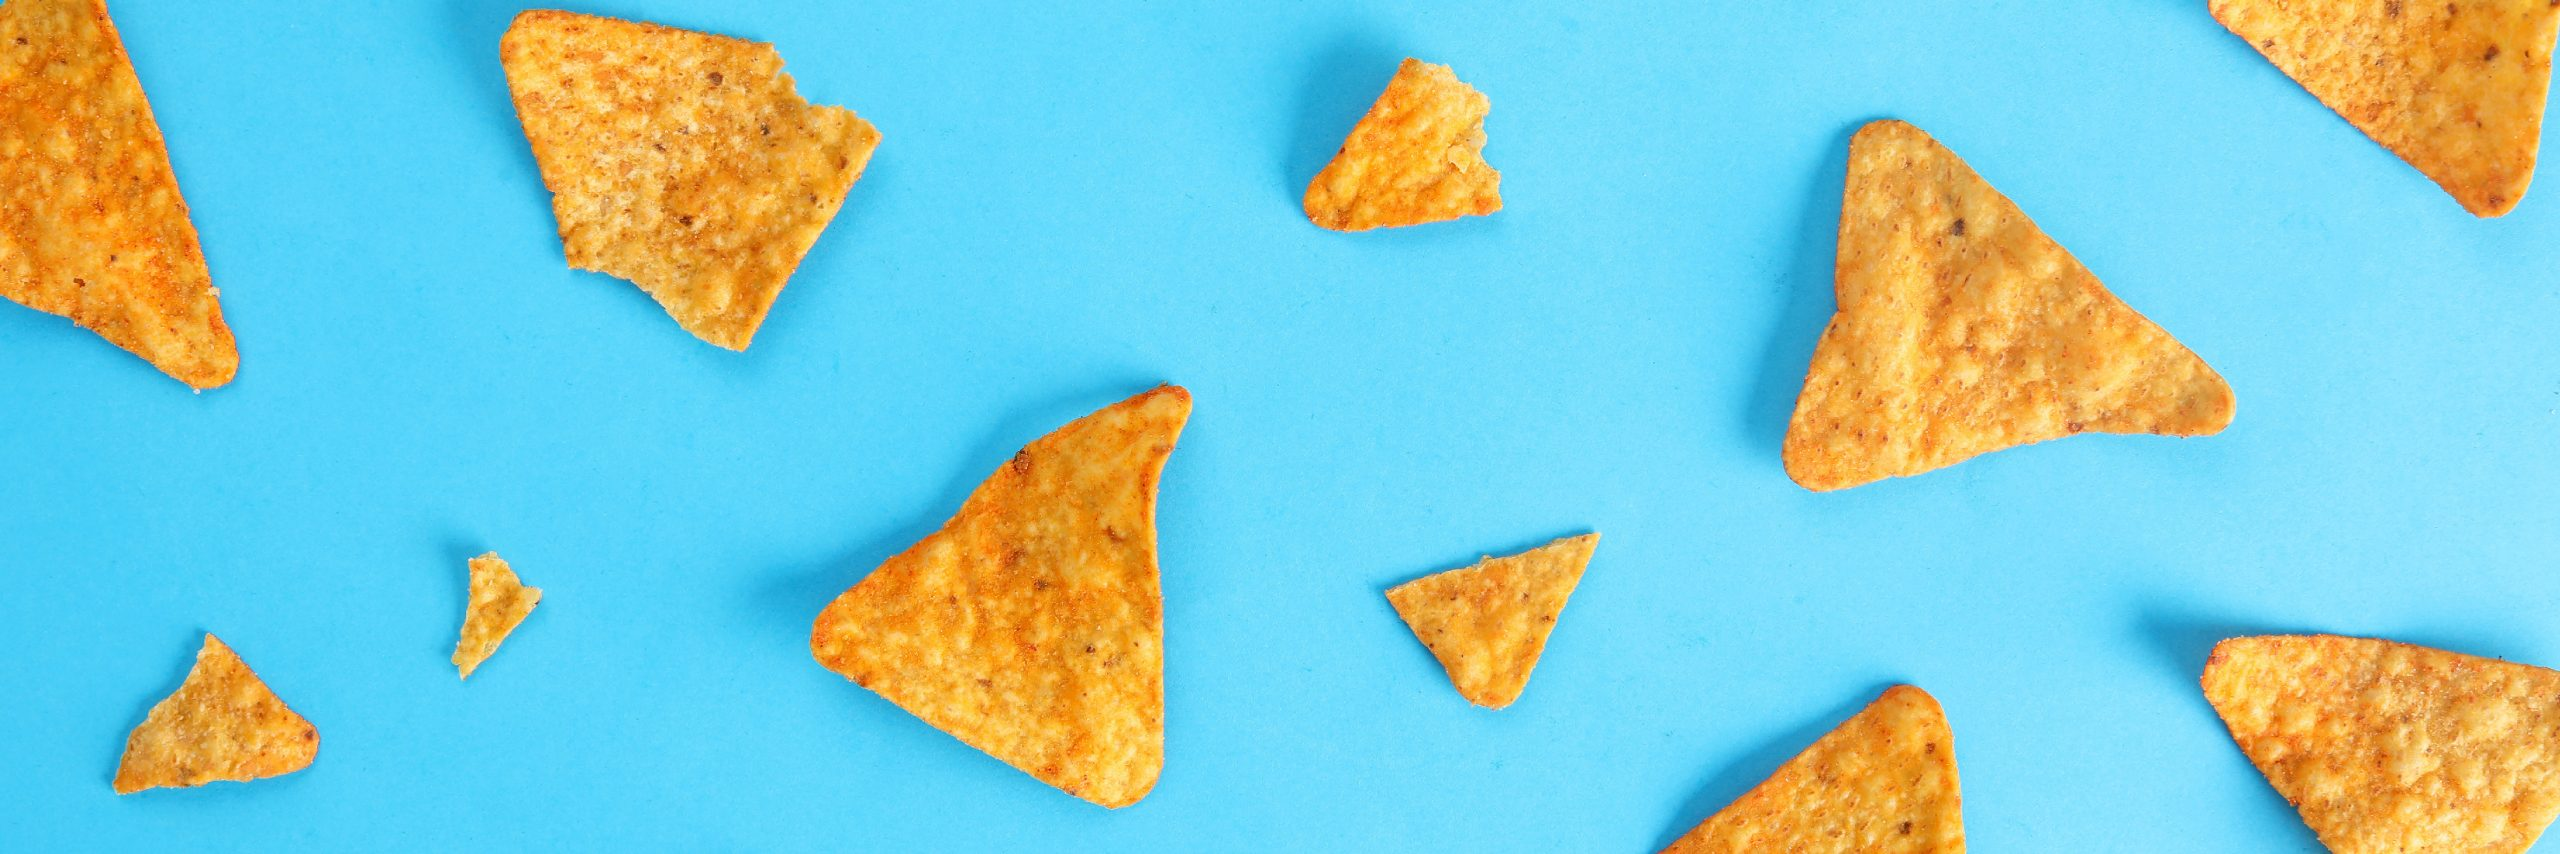 Doritos scattered on a blue surface.